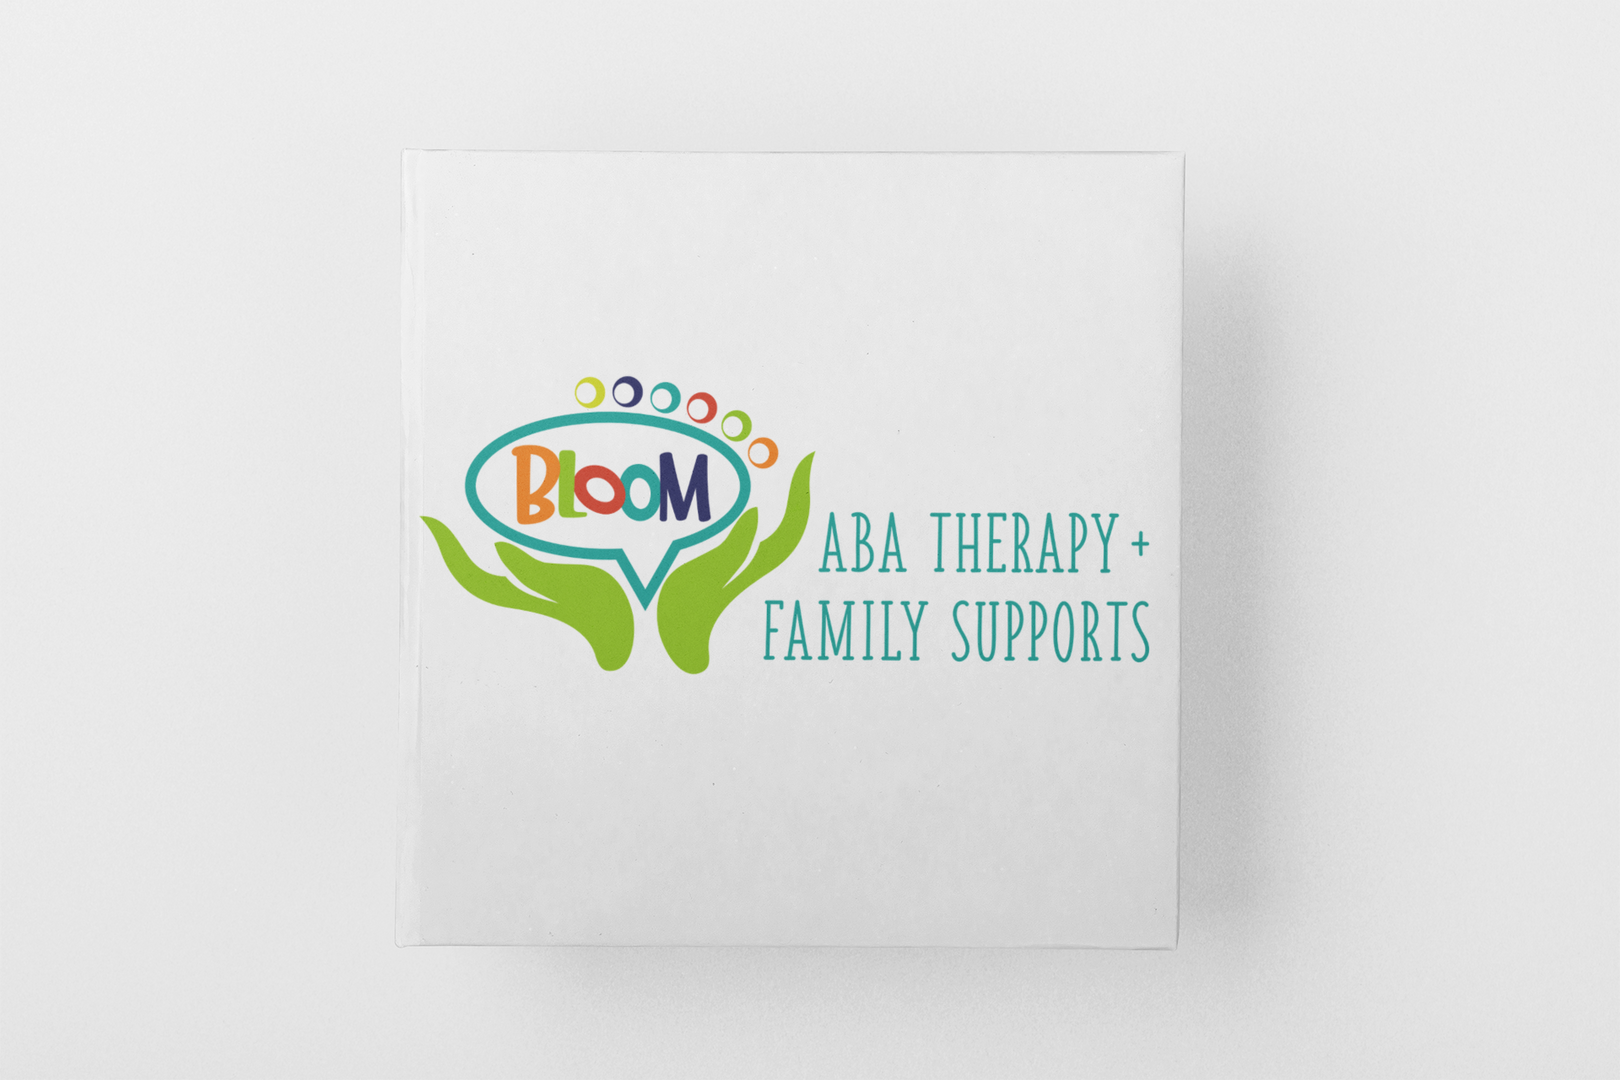 ABA Therapy & Family Supports